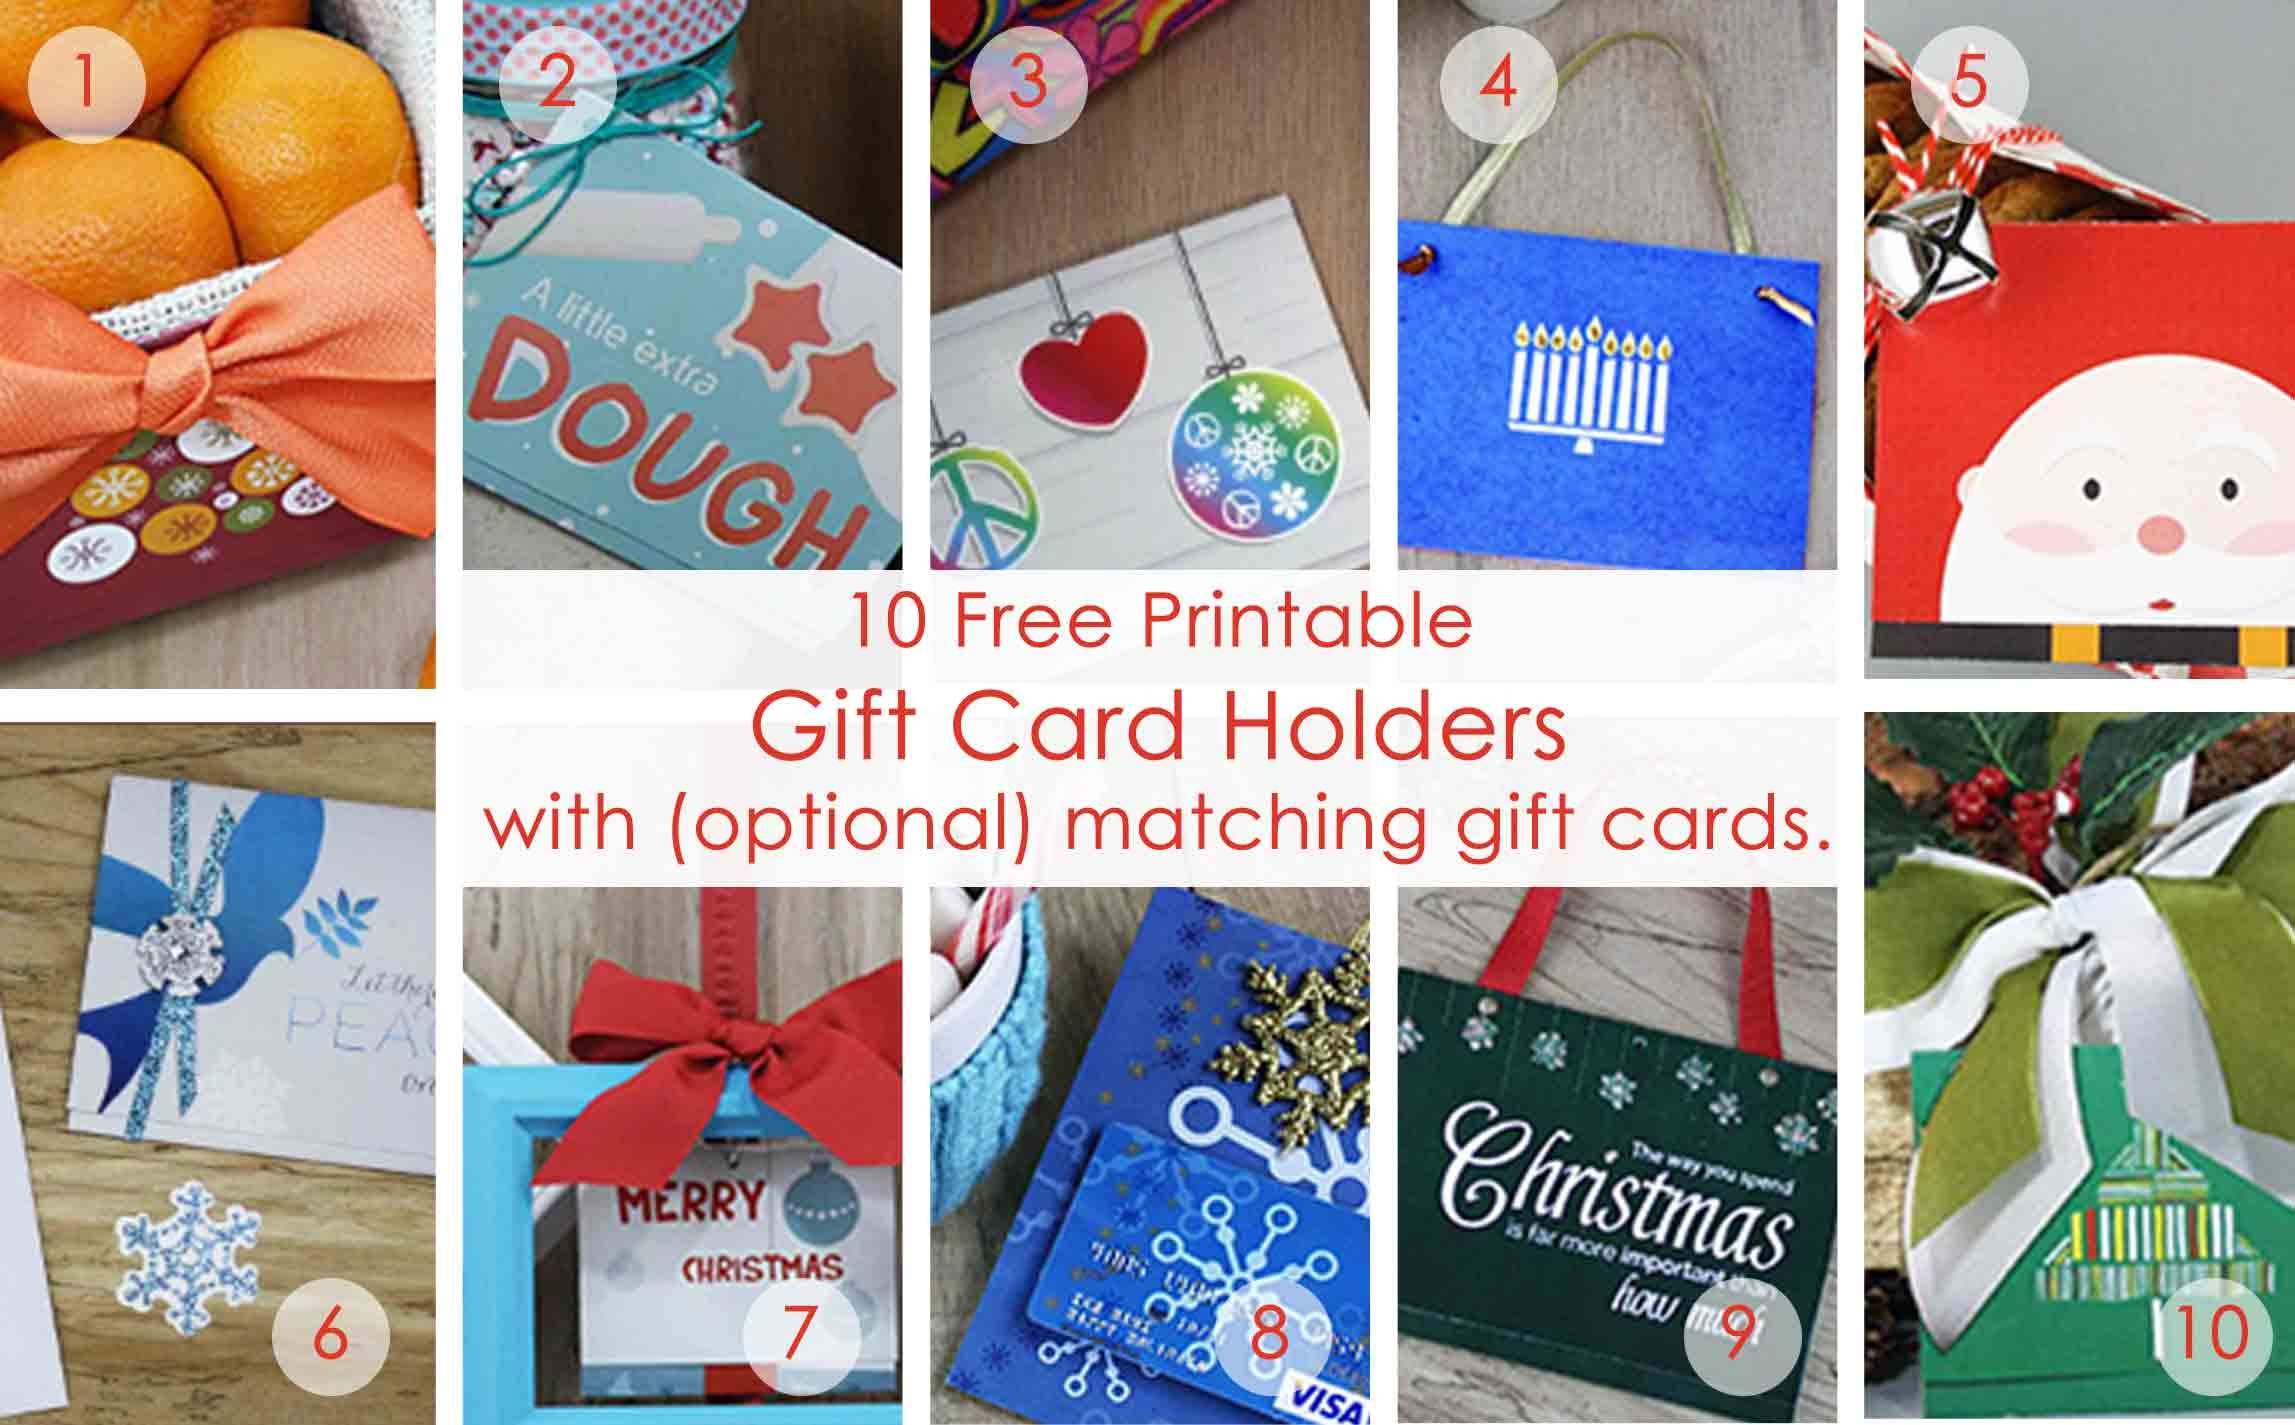 Over 50 Printable Gift Card Holders For The Holidays   Gcg - Free Printable Gift Card Envelope Template